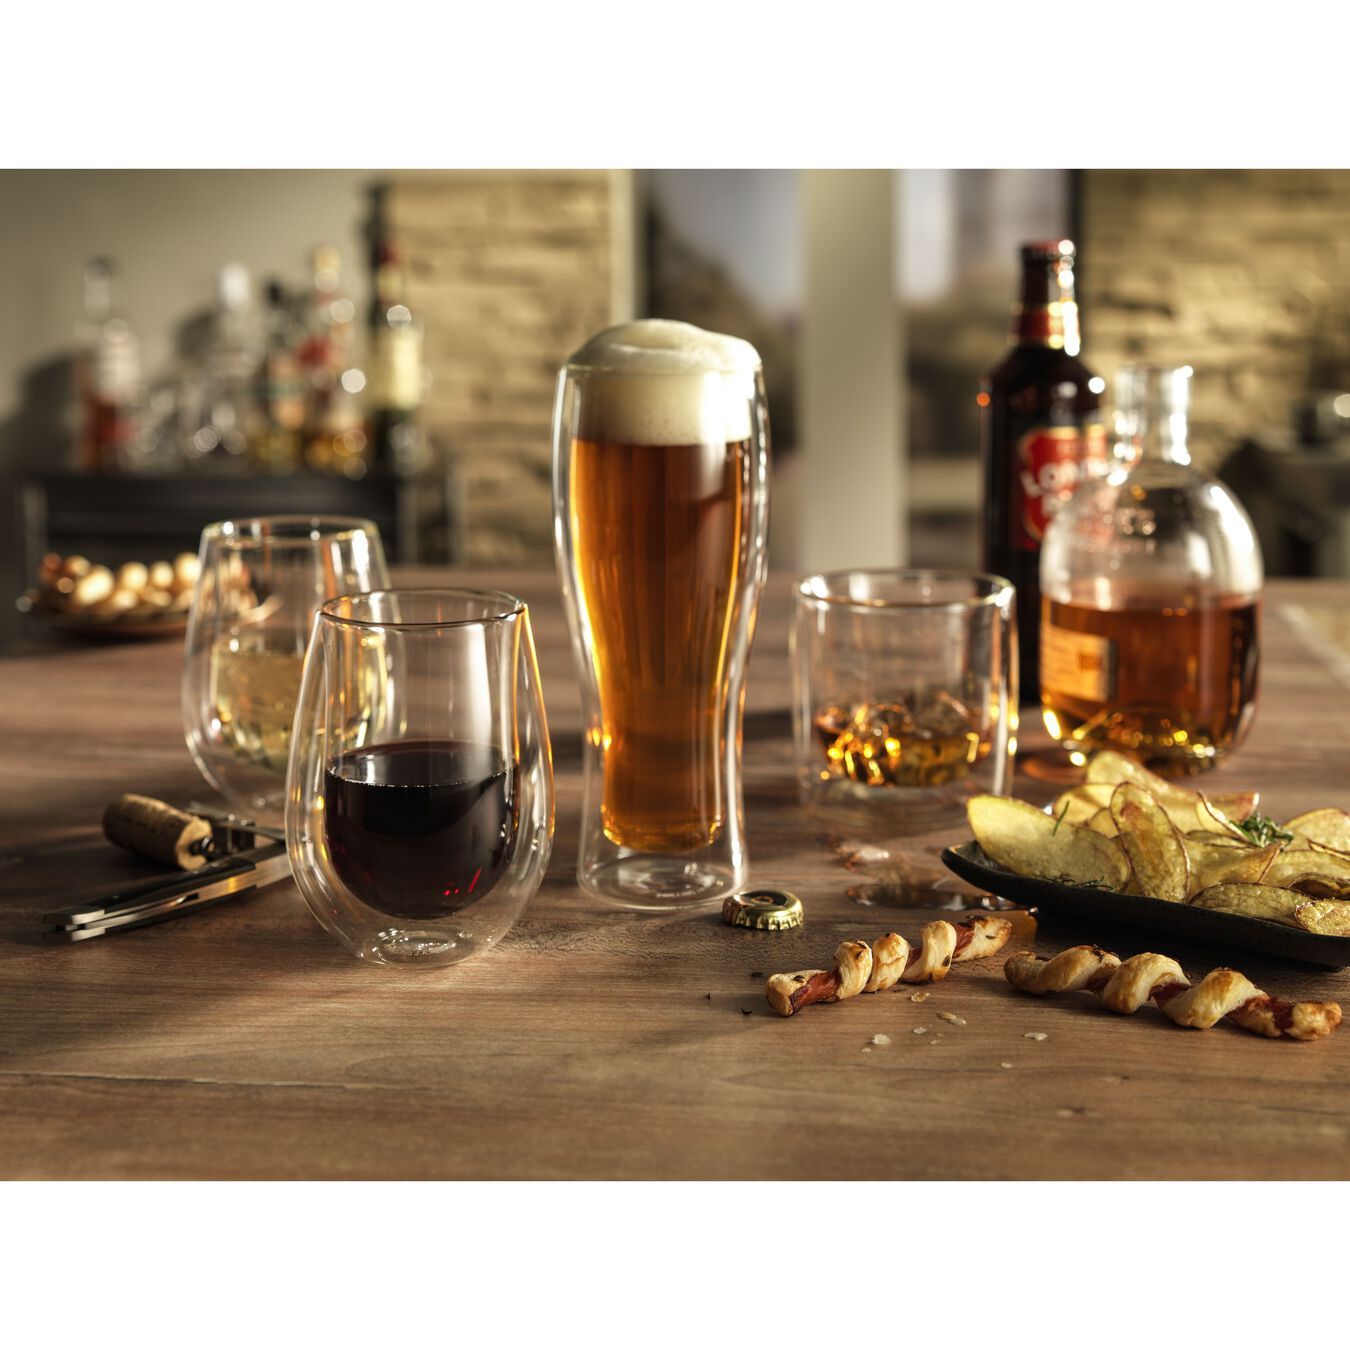 2 Piece Double-Wall Beer Glass Set,,large 3